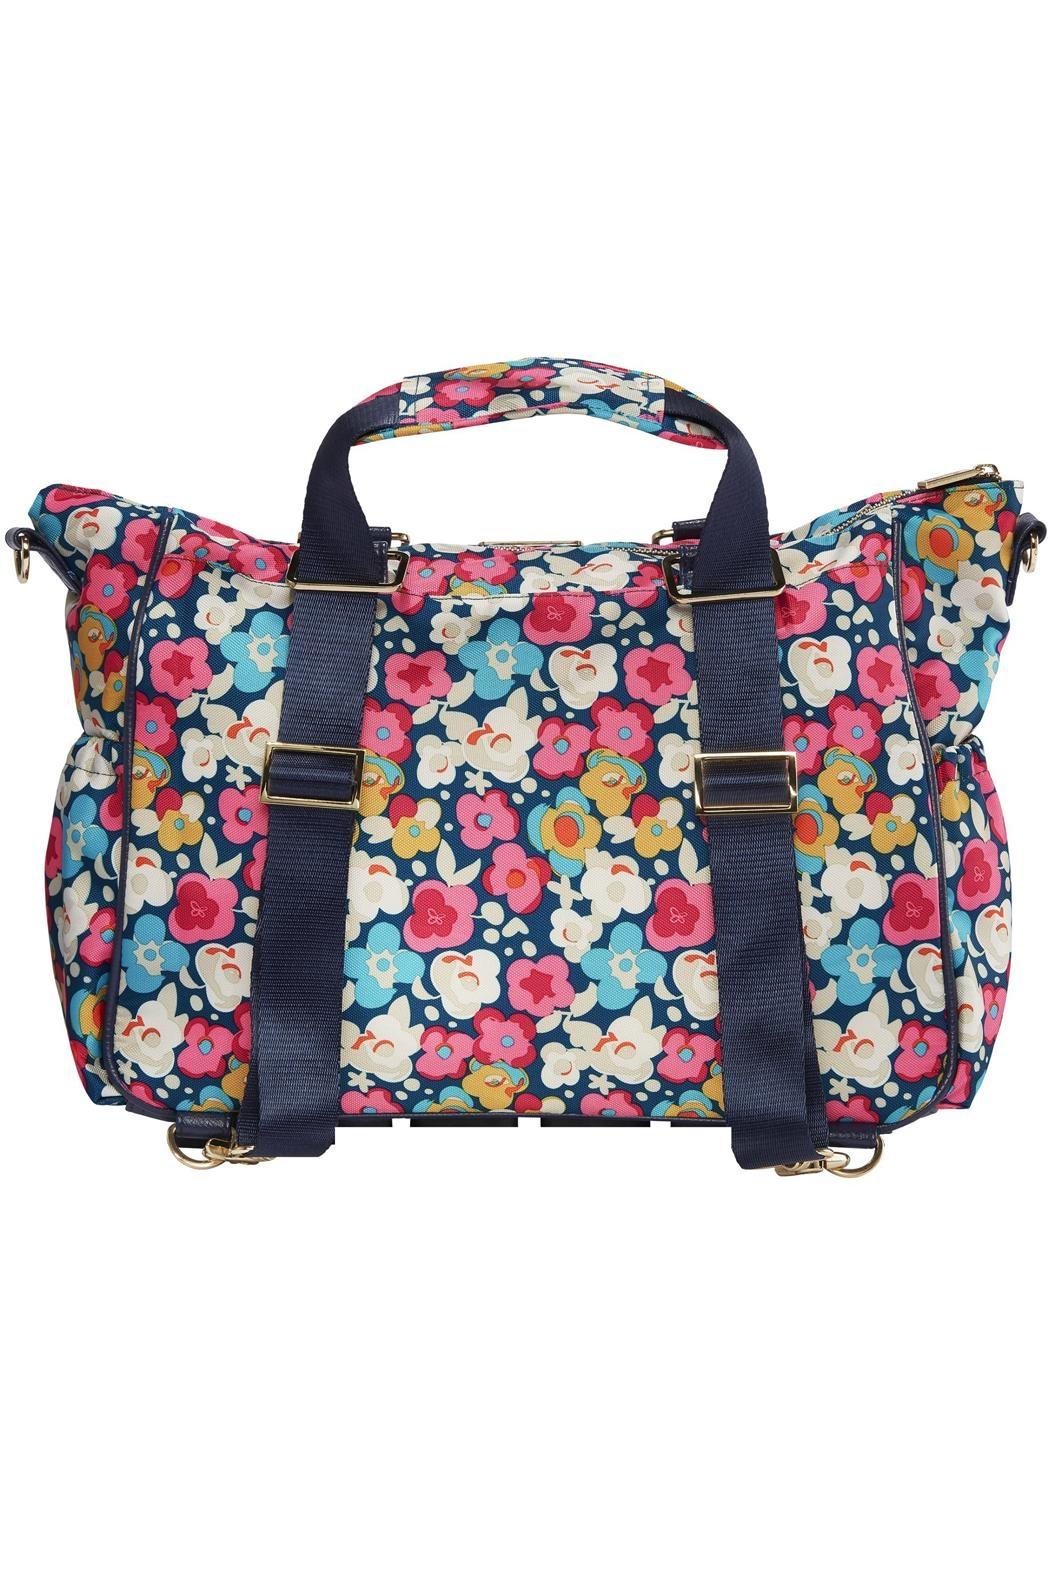 Itzy Ritzy Convertible Diaper Bag - Front Full Image